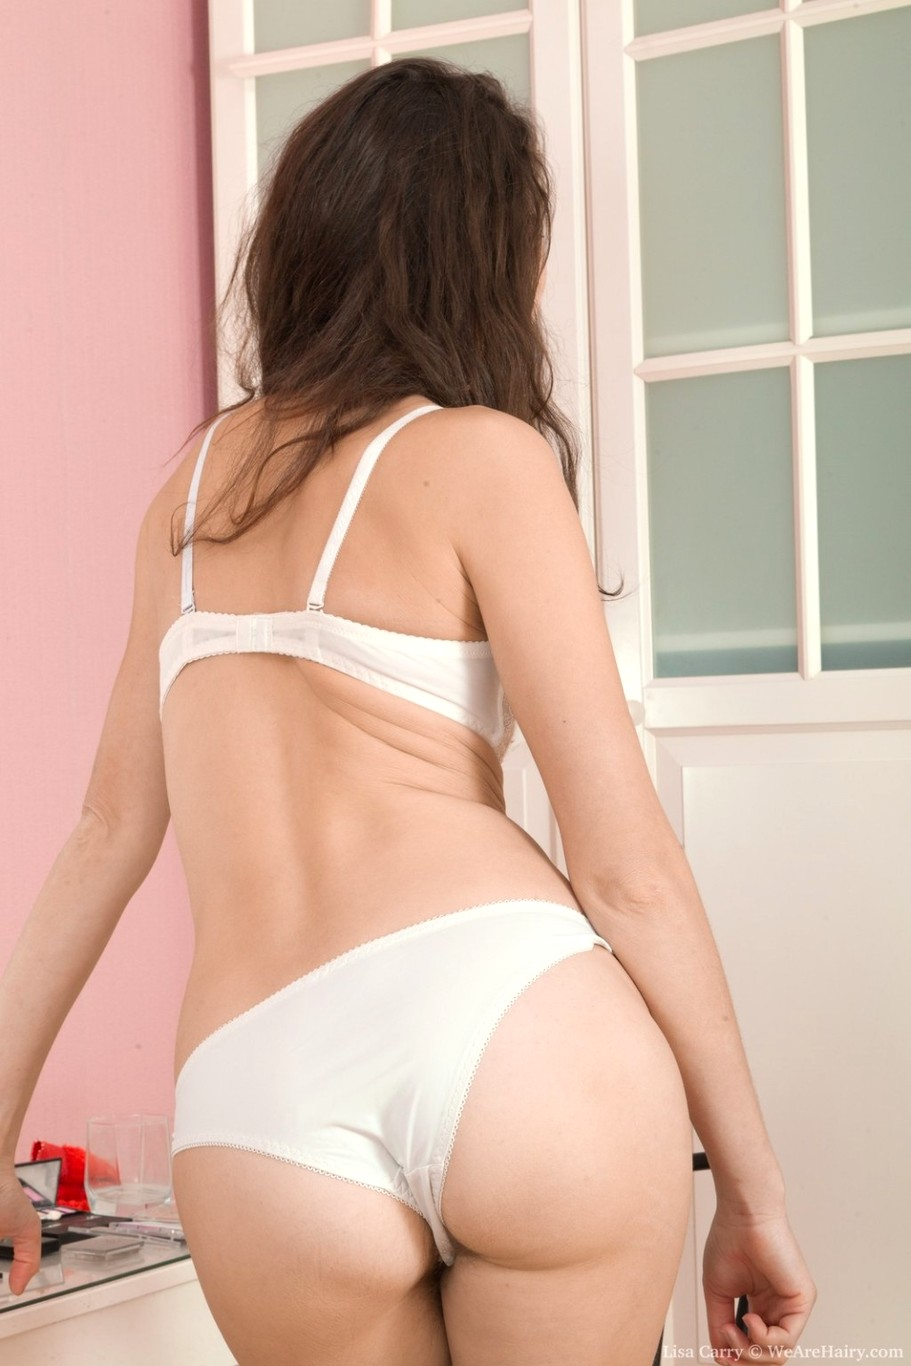 Lisa carry strips and shows off her natural body 9